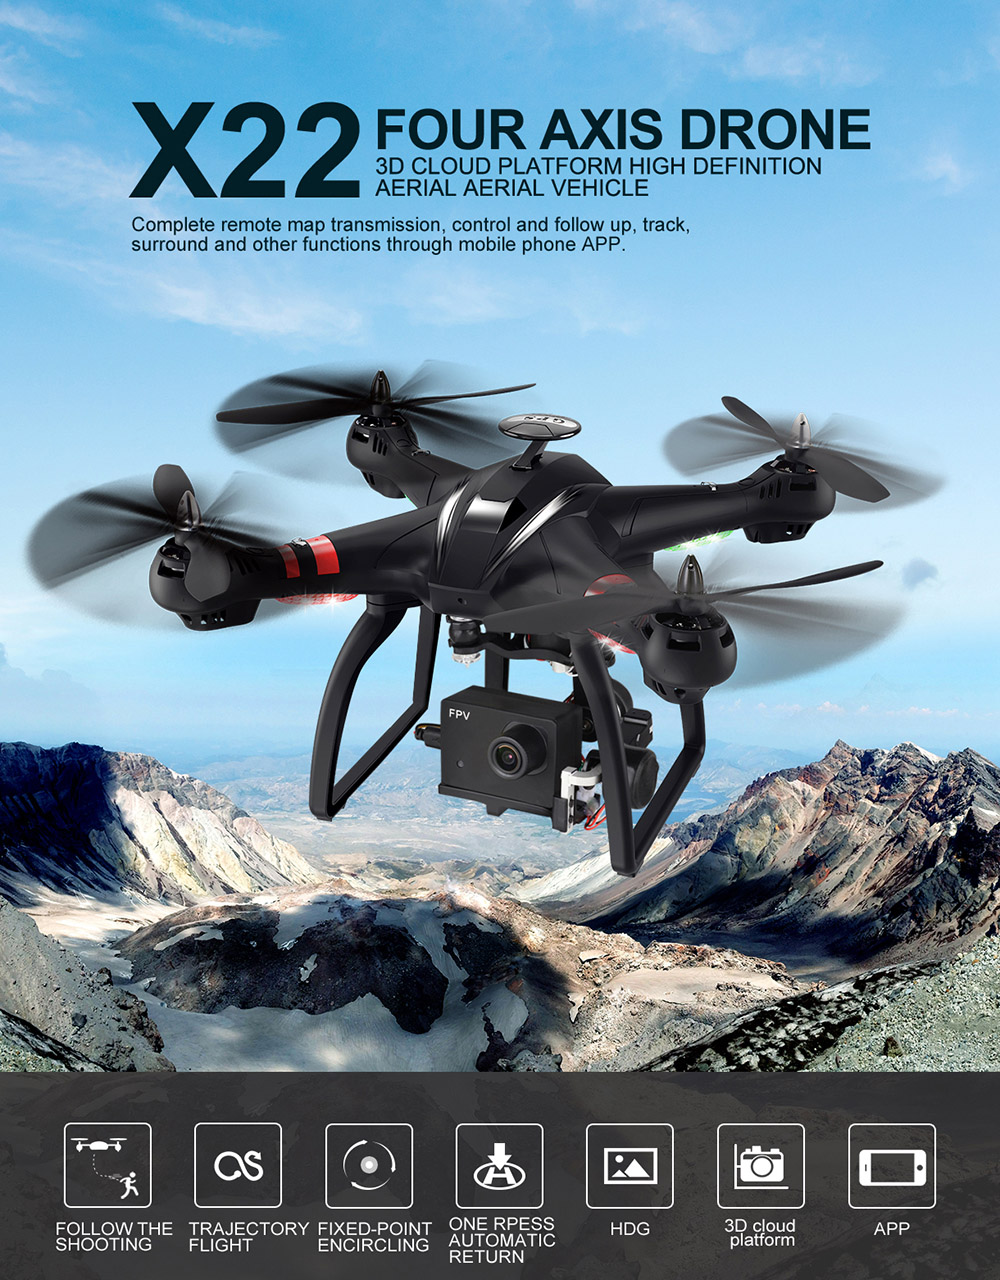 BAYANGTOYS X22 RC Quadcopter Drones Dual GPS WiFi FPV Brushless Follow Me Helicopters Racing Remote Control RC Drone Dron Toys 1